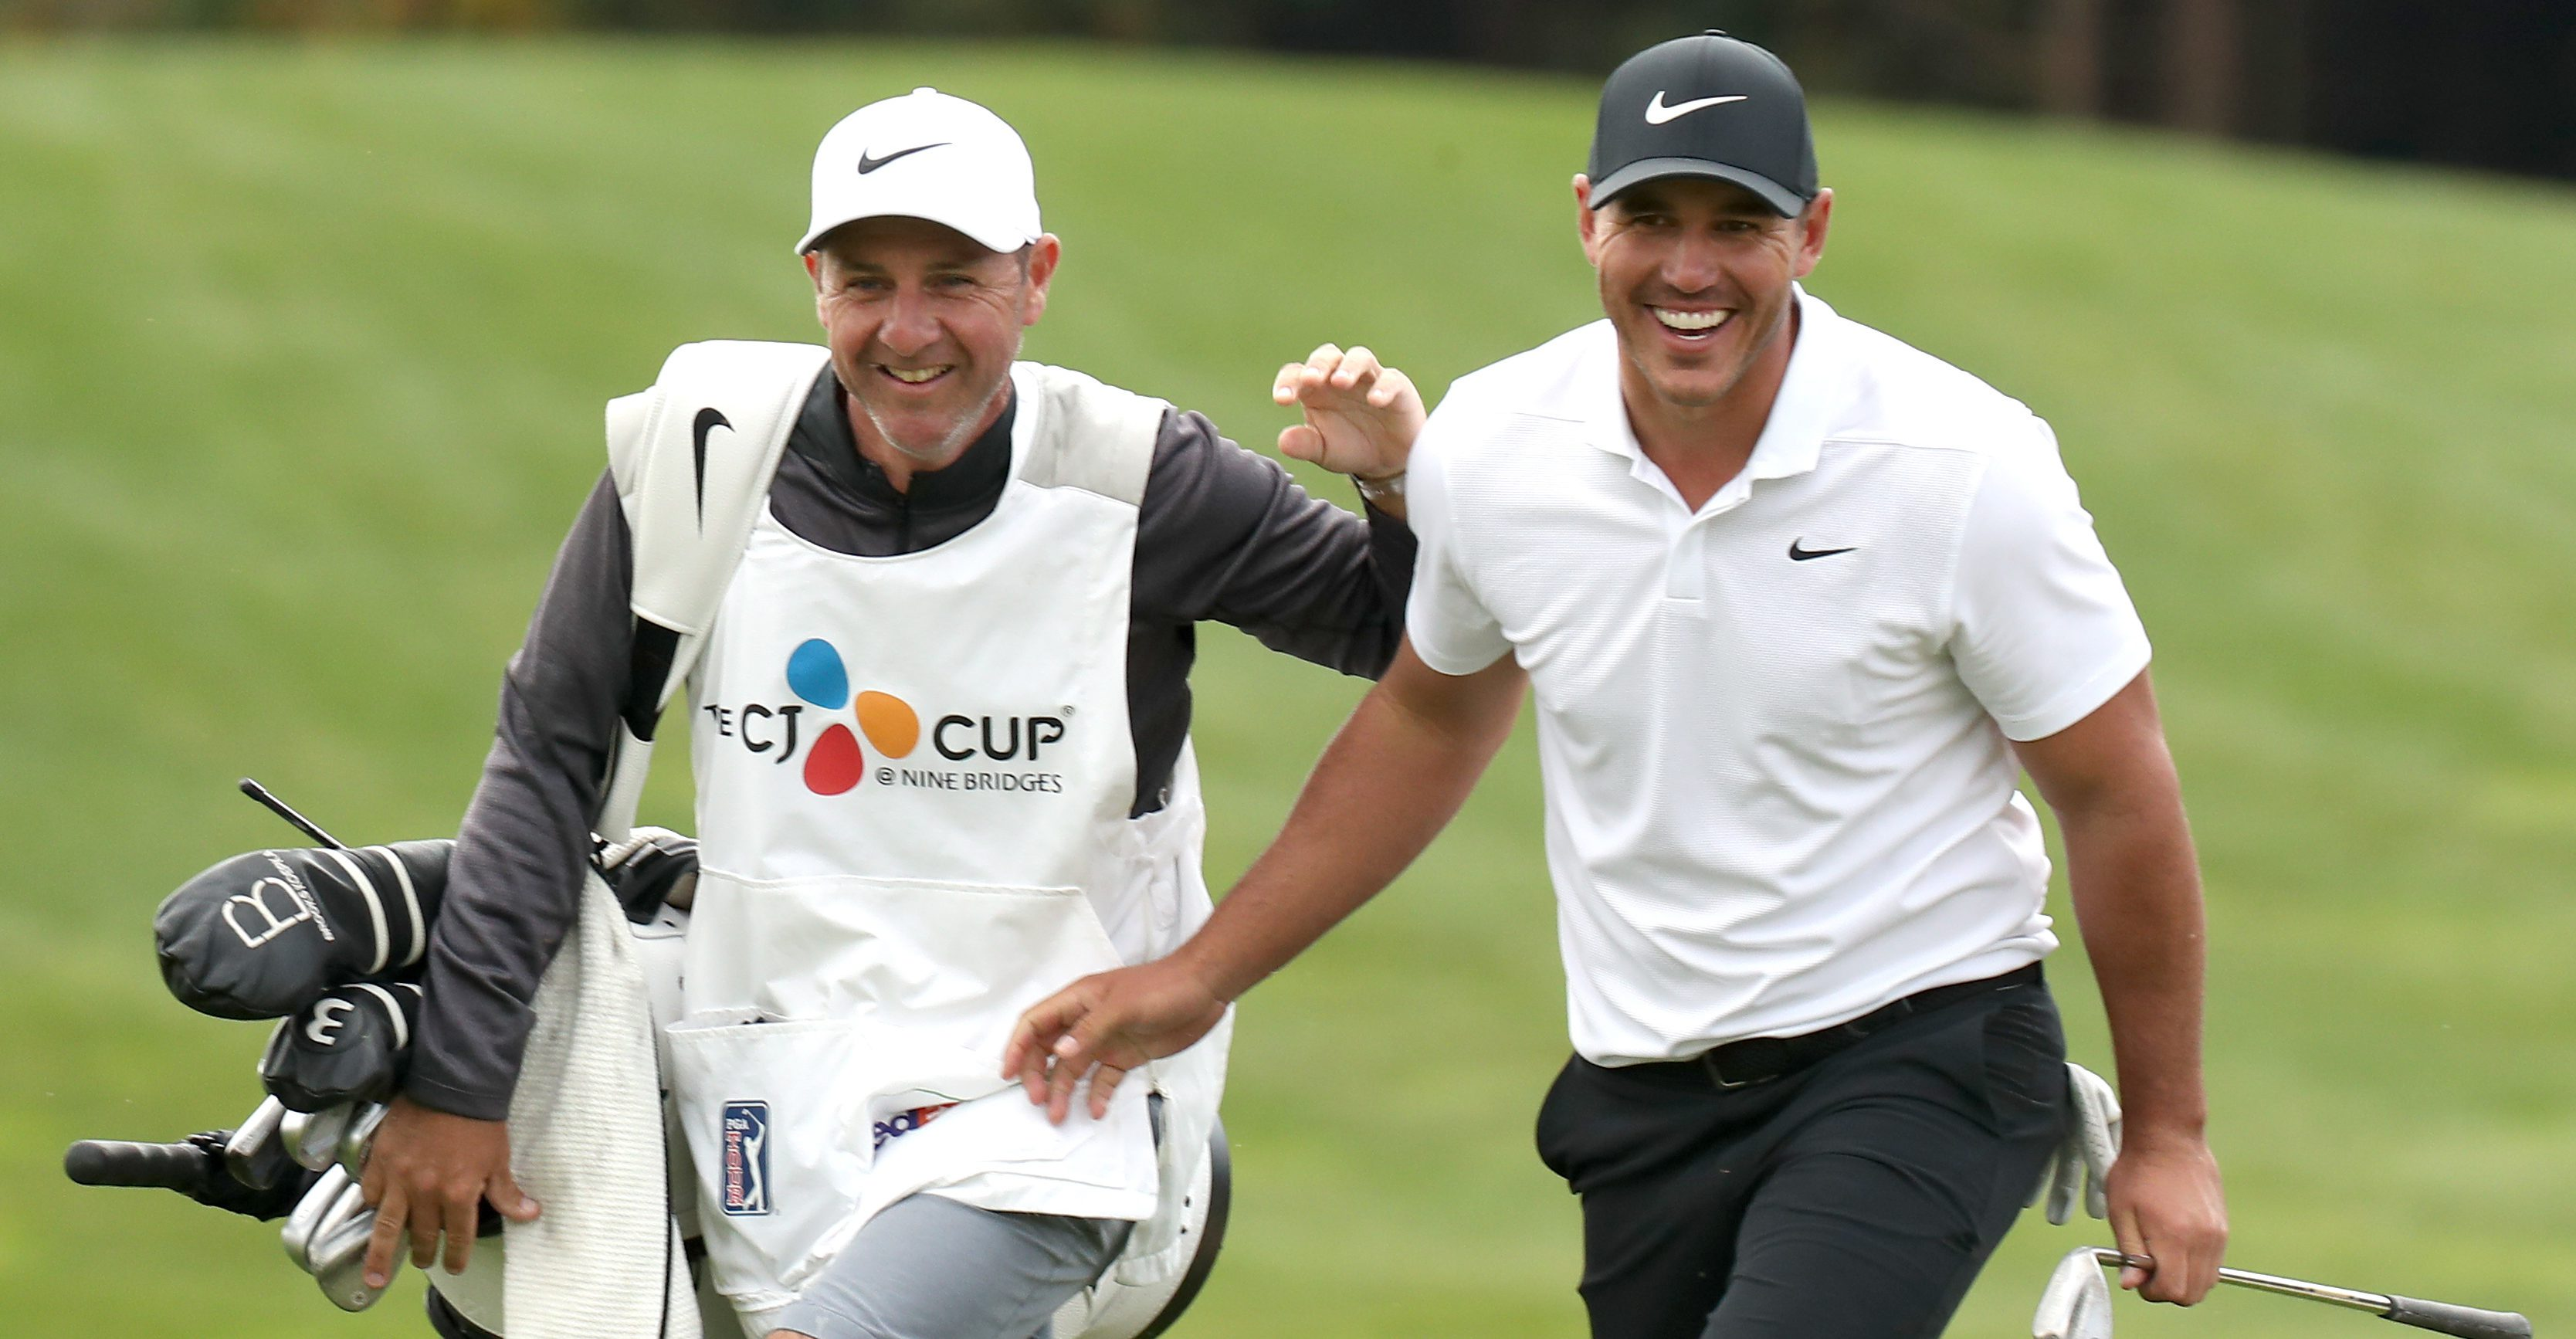 Brooks Koepka of the United States reacts with his caddie after his shot on the 16th hole during the final round of the CJ Cup PGA golf tournament at Nine Bridges on Jeju Island, South Korea, Sunday, Oct. 21, 2018. (Park Ji-ho/Yonhap via AP)